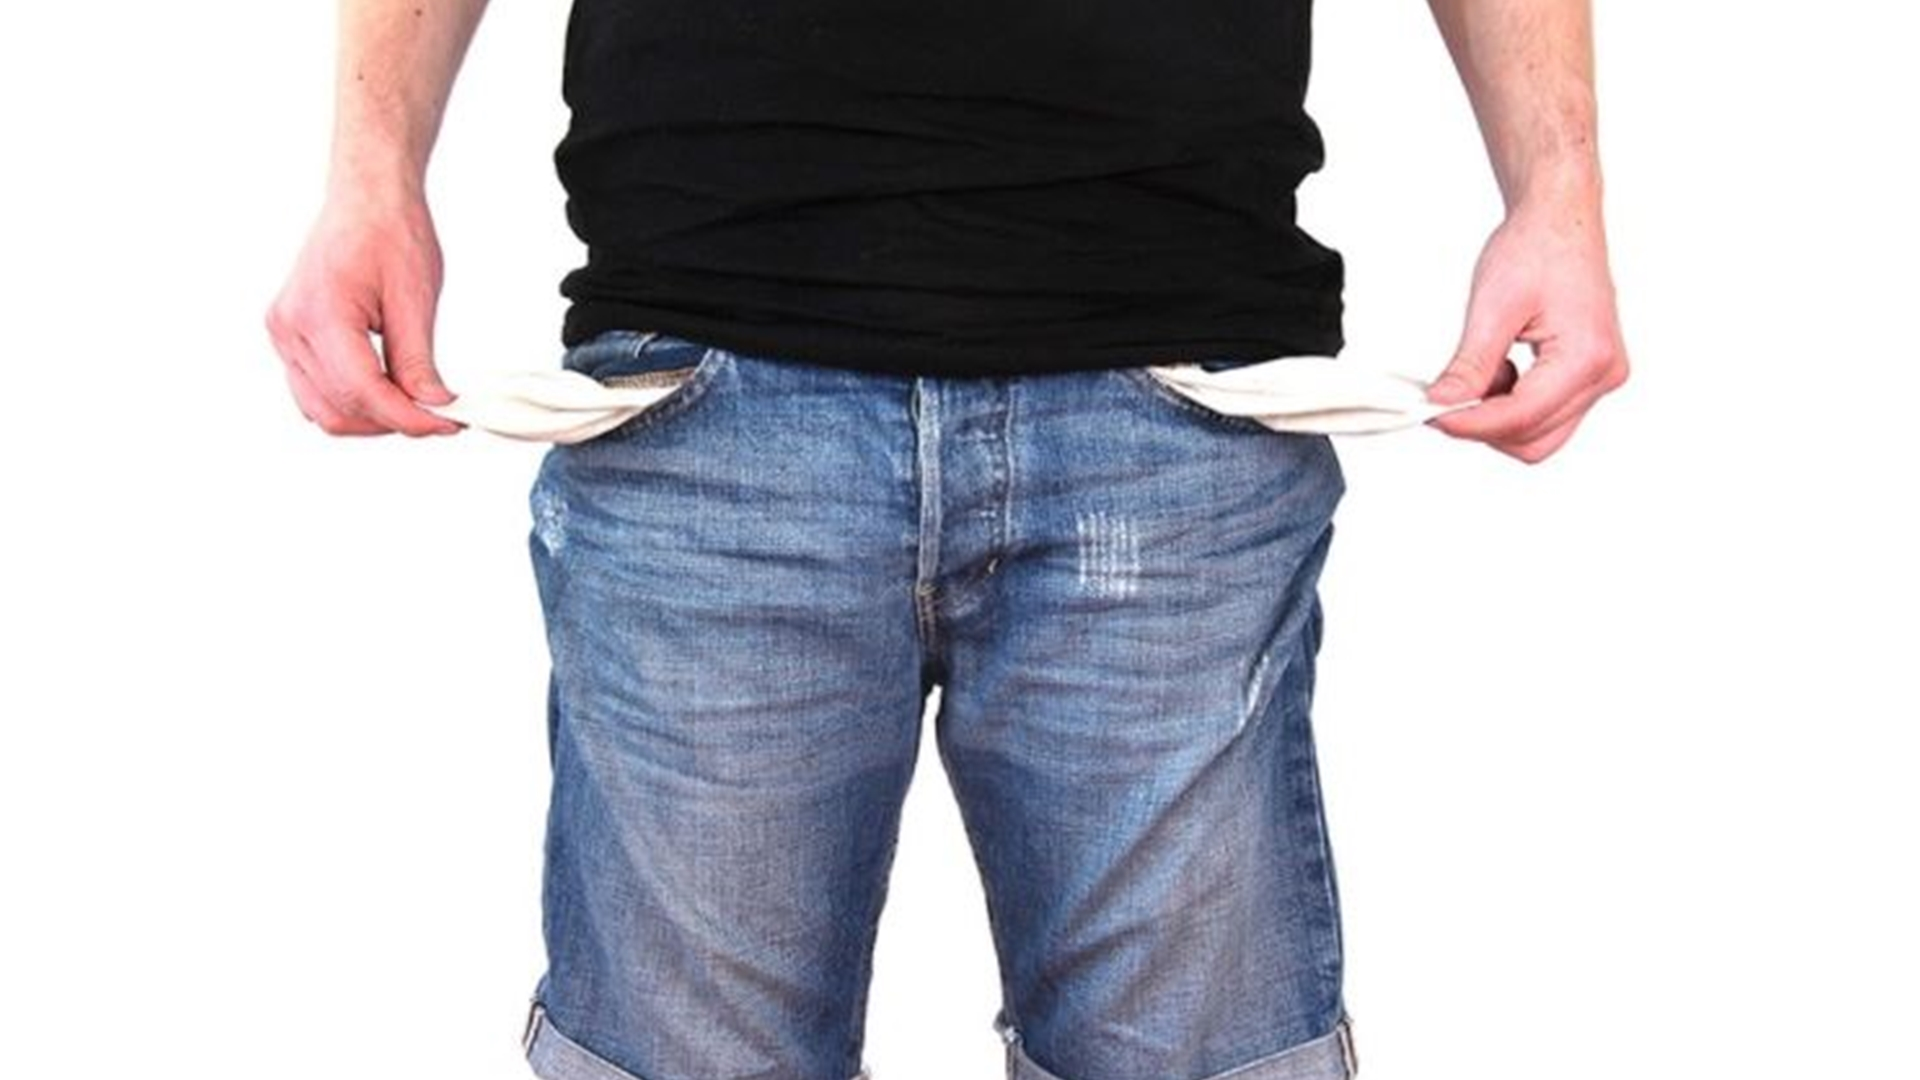 Debt: How it can ruin your life in many ways